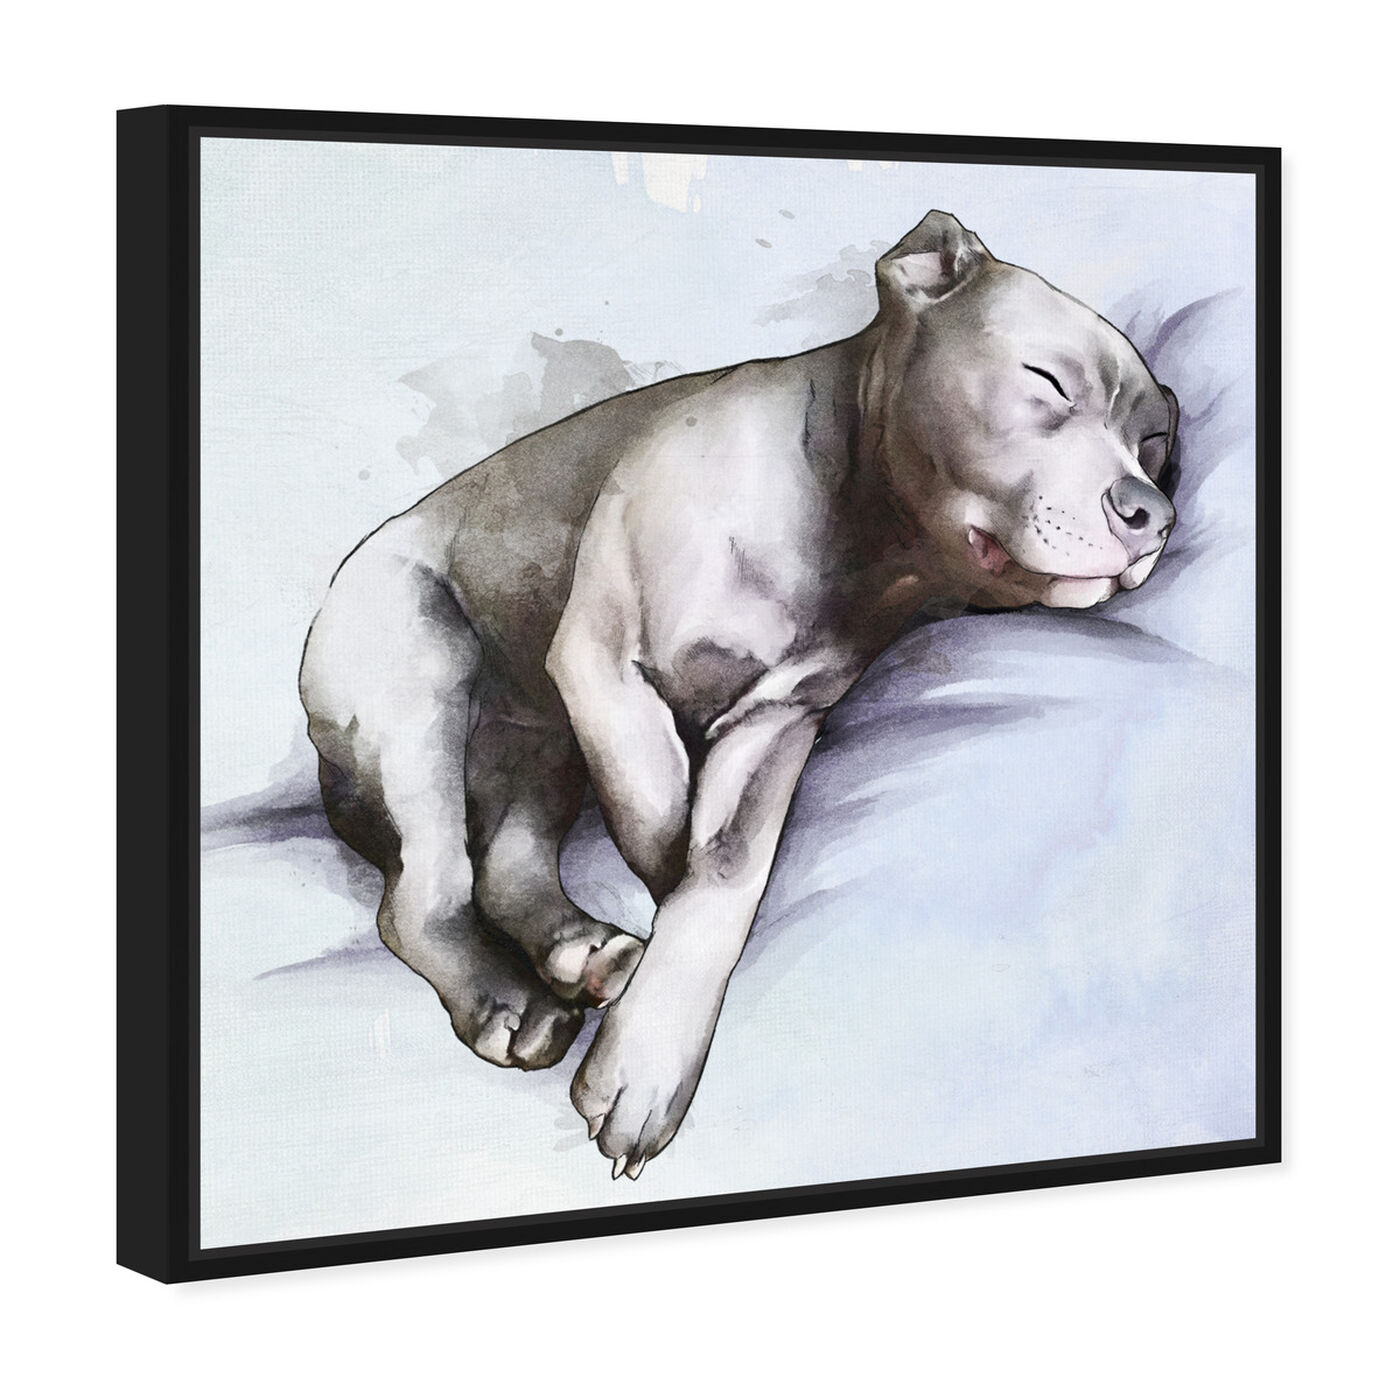 Angled view of Sleeping Pitbull featuring animals and dogs and puppies art.